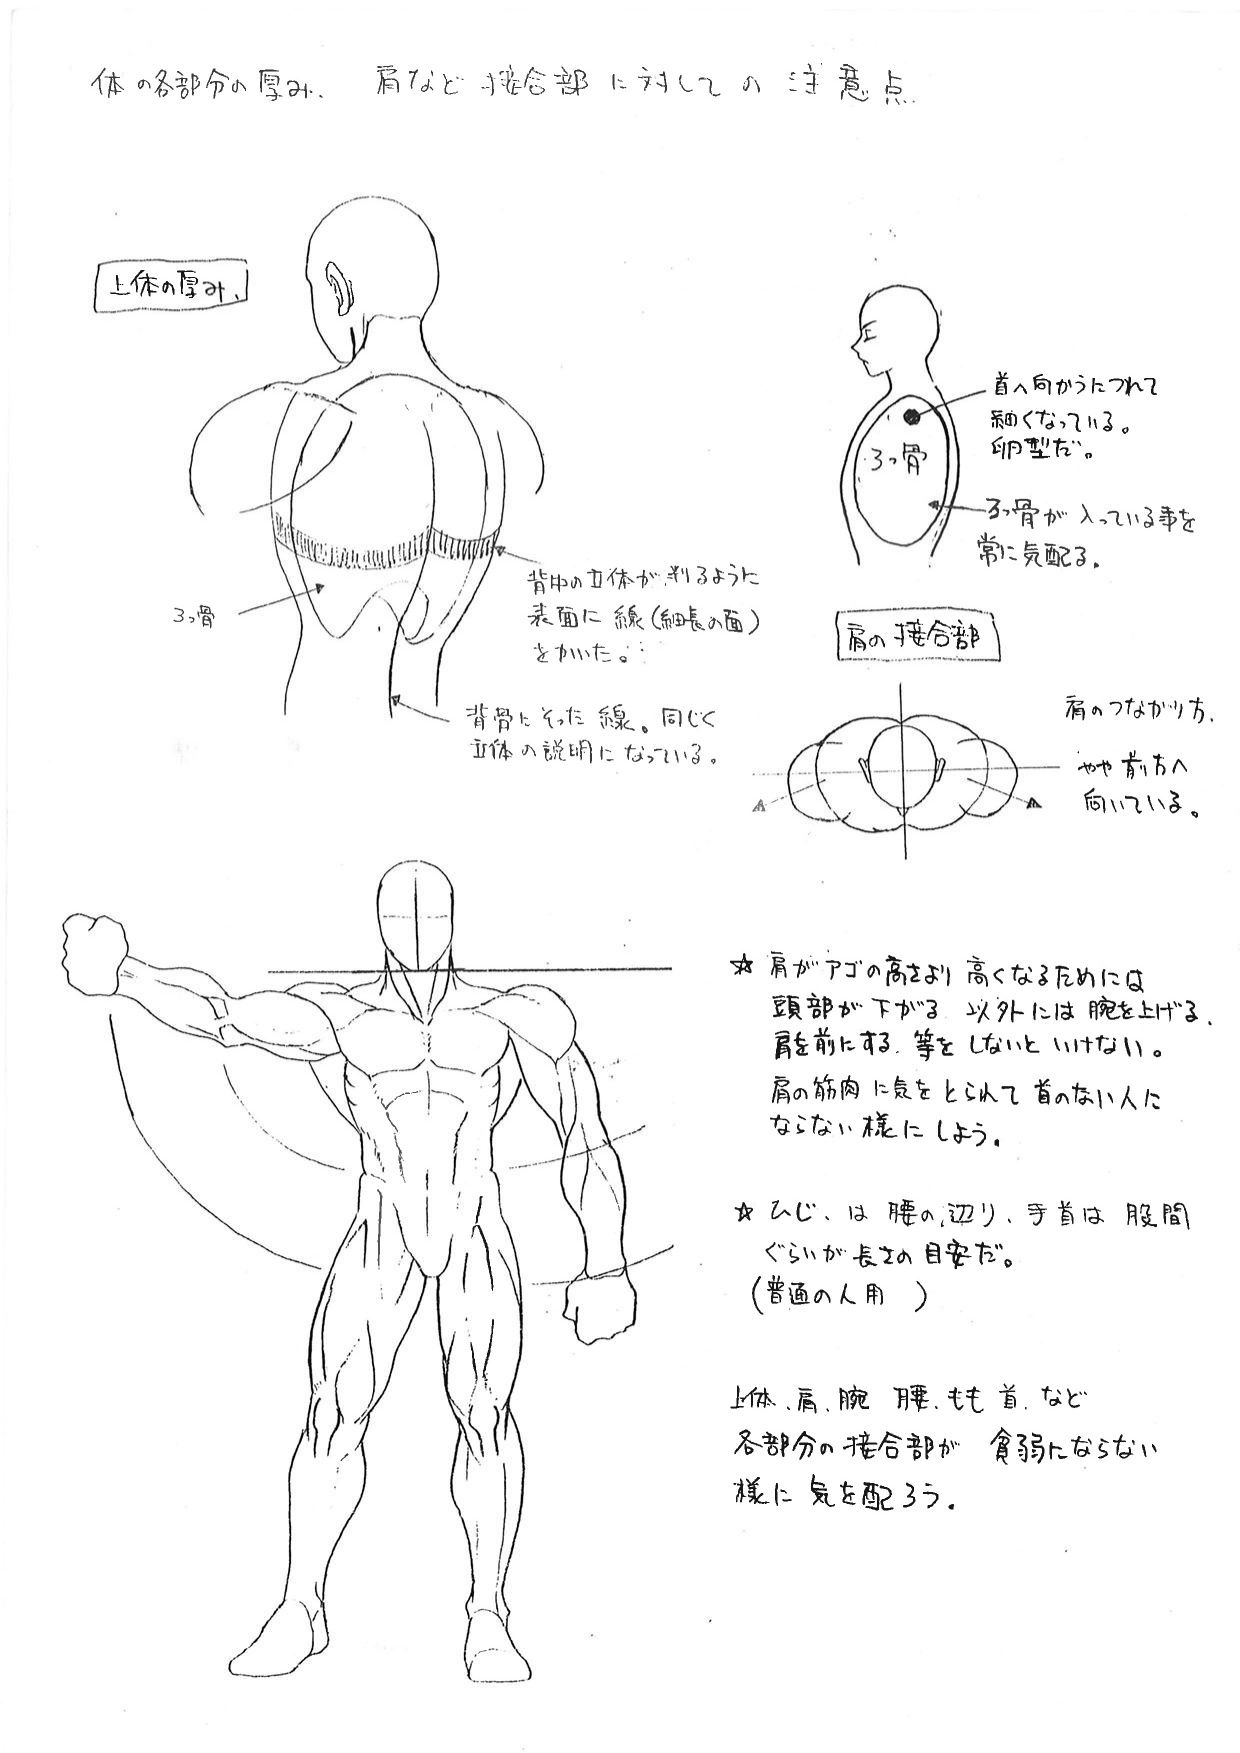 Video Games Densetsu More Pictures From The Anatomy Guide Made By